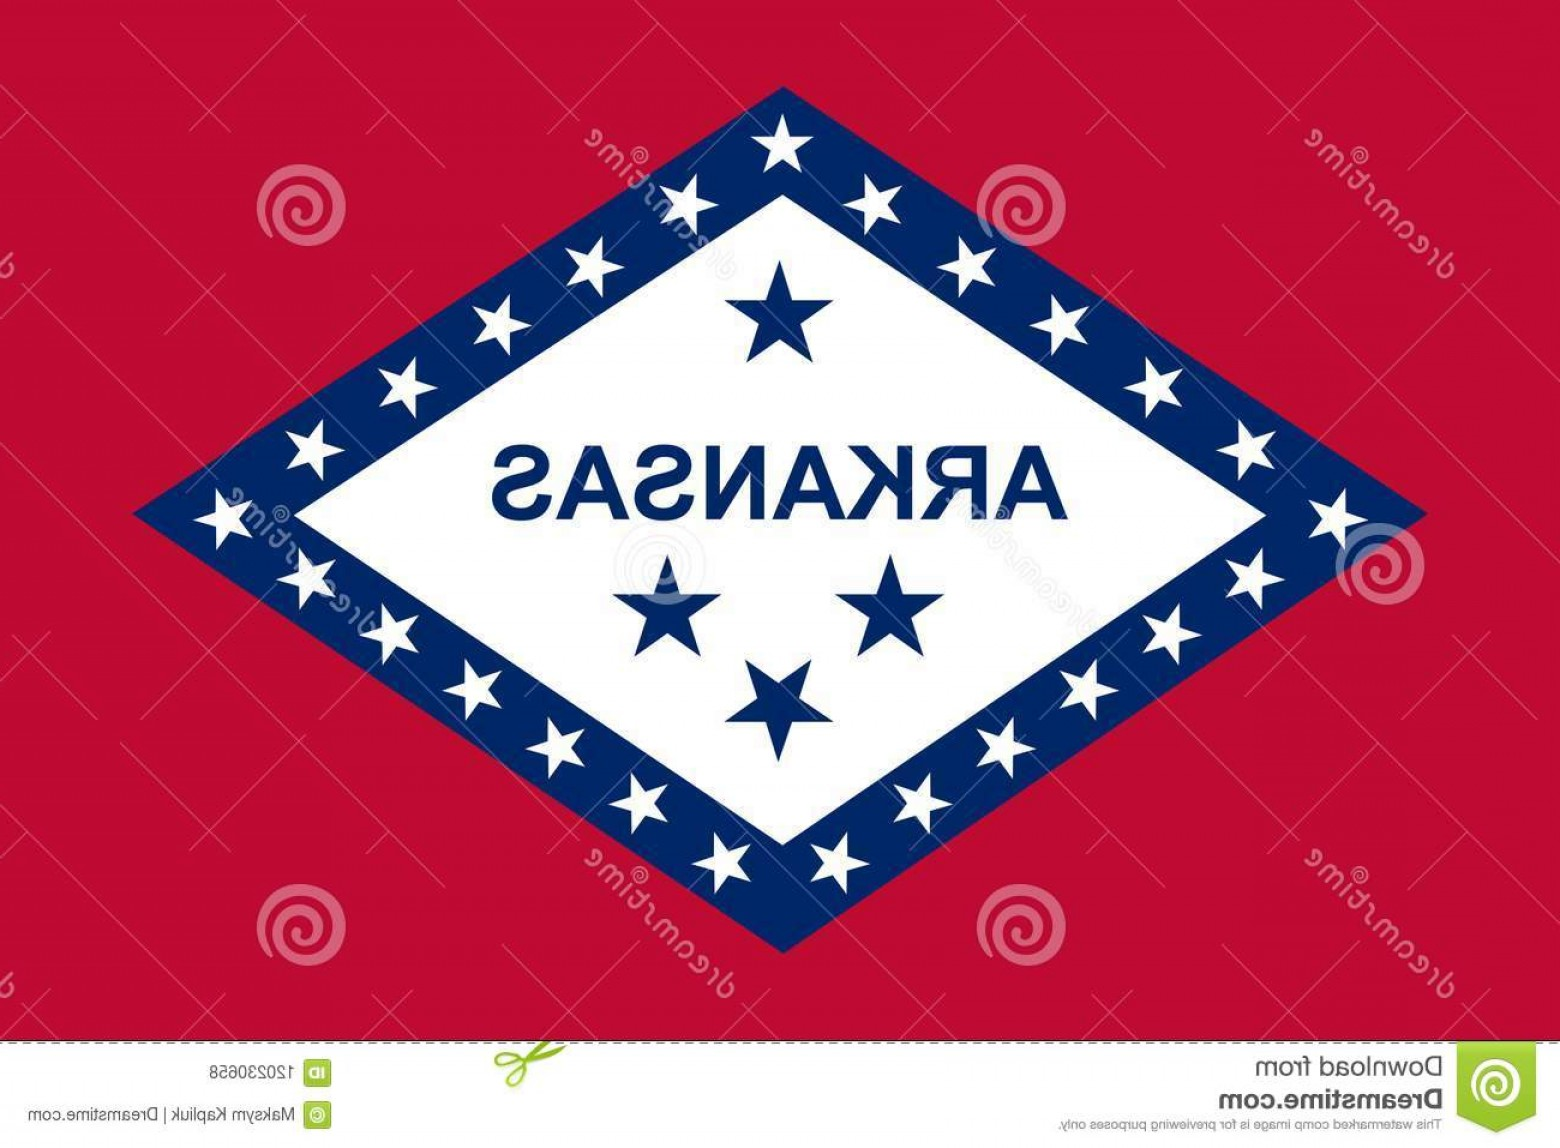 State Flag Images Vector: Arkansas State Flag Vector Illustration United States America Image